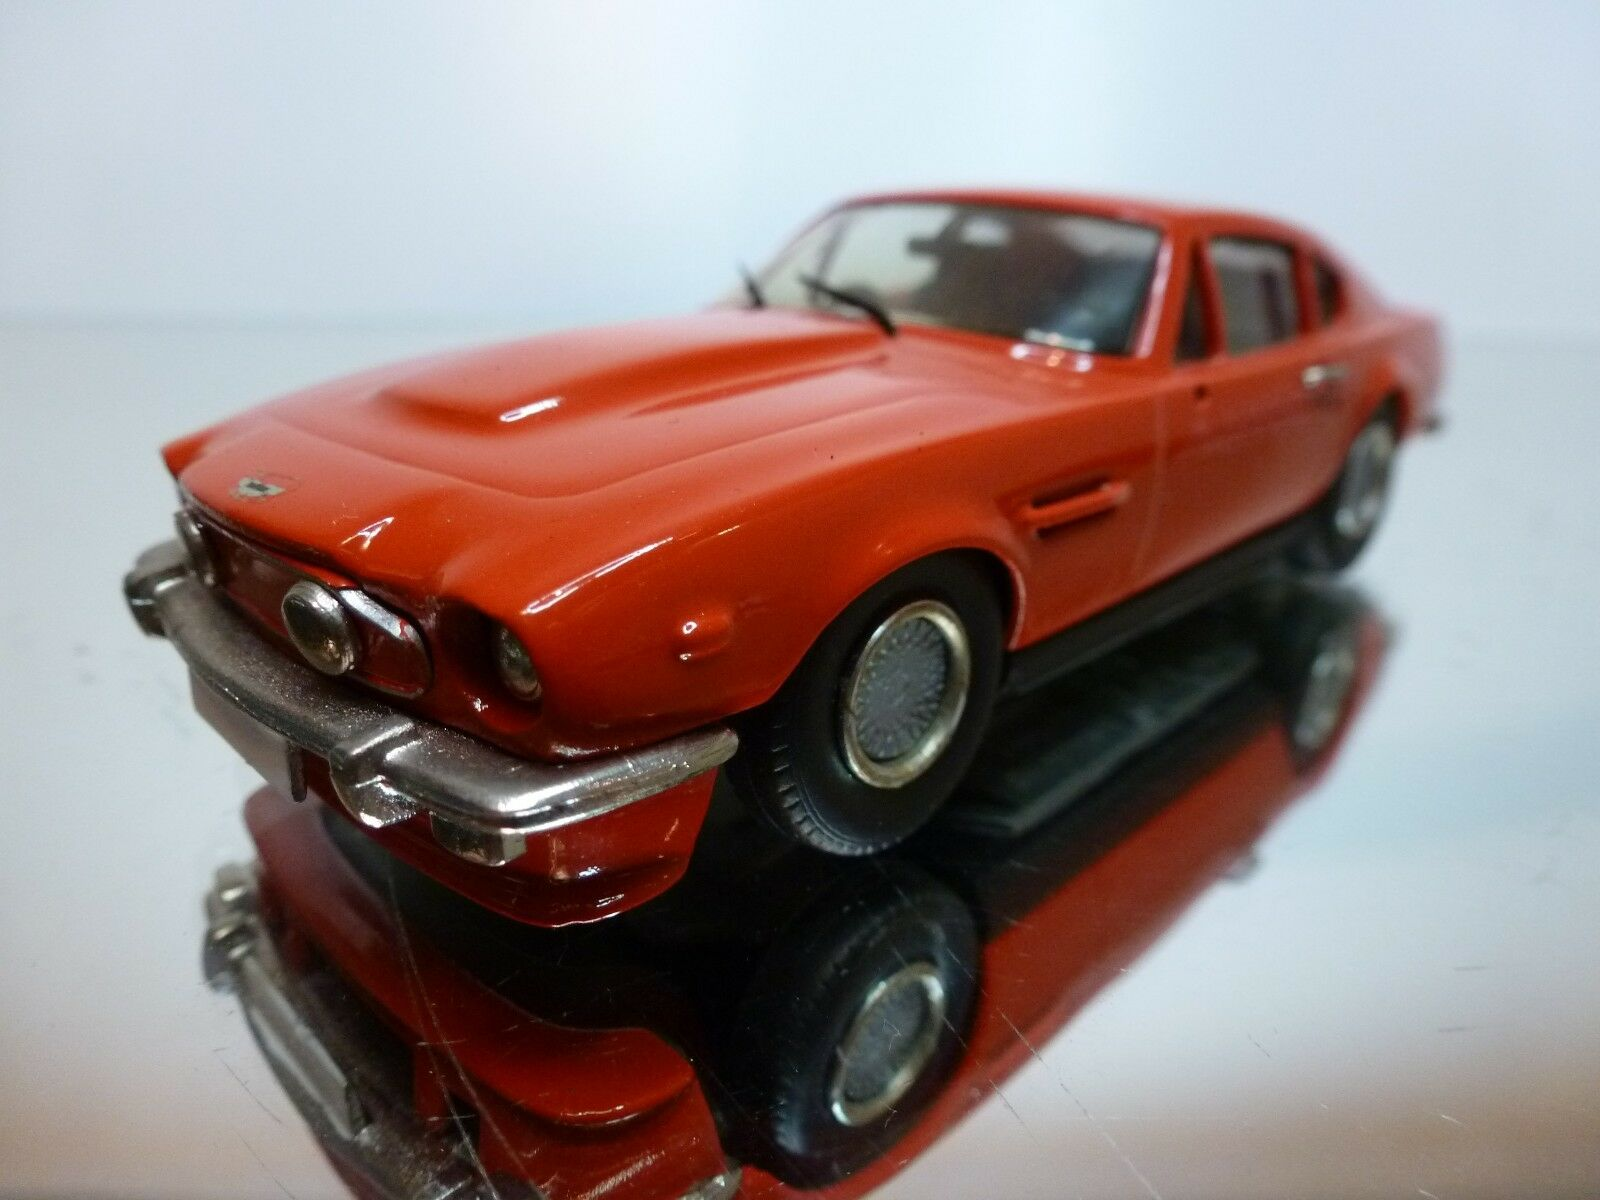 WESTERN MODELS WP 109 ASTON MARTIN V8 - rouge 1 43 - EXCELLENT CONDITION - 9